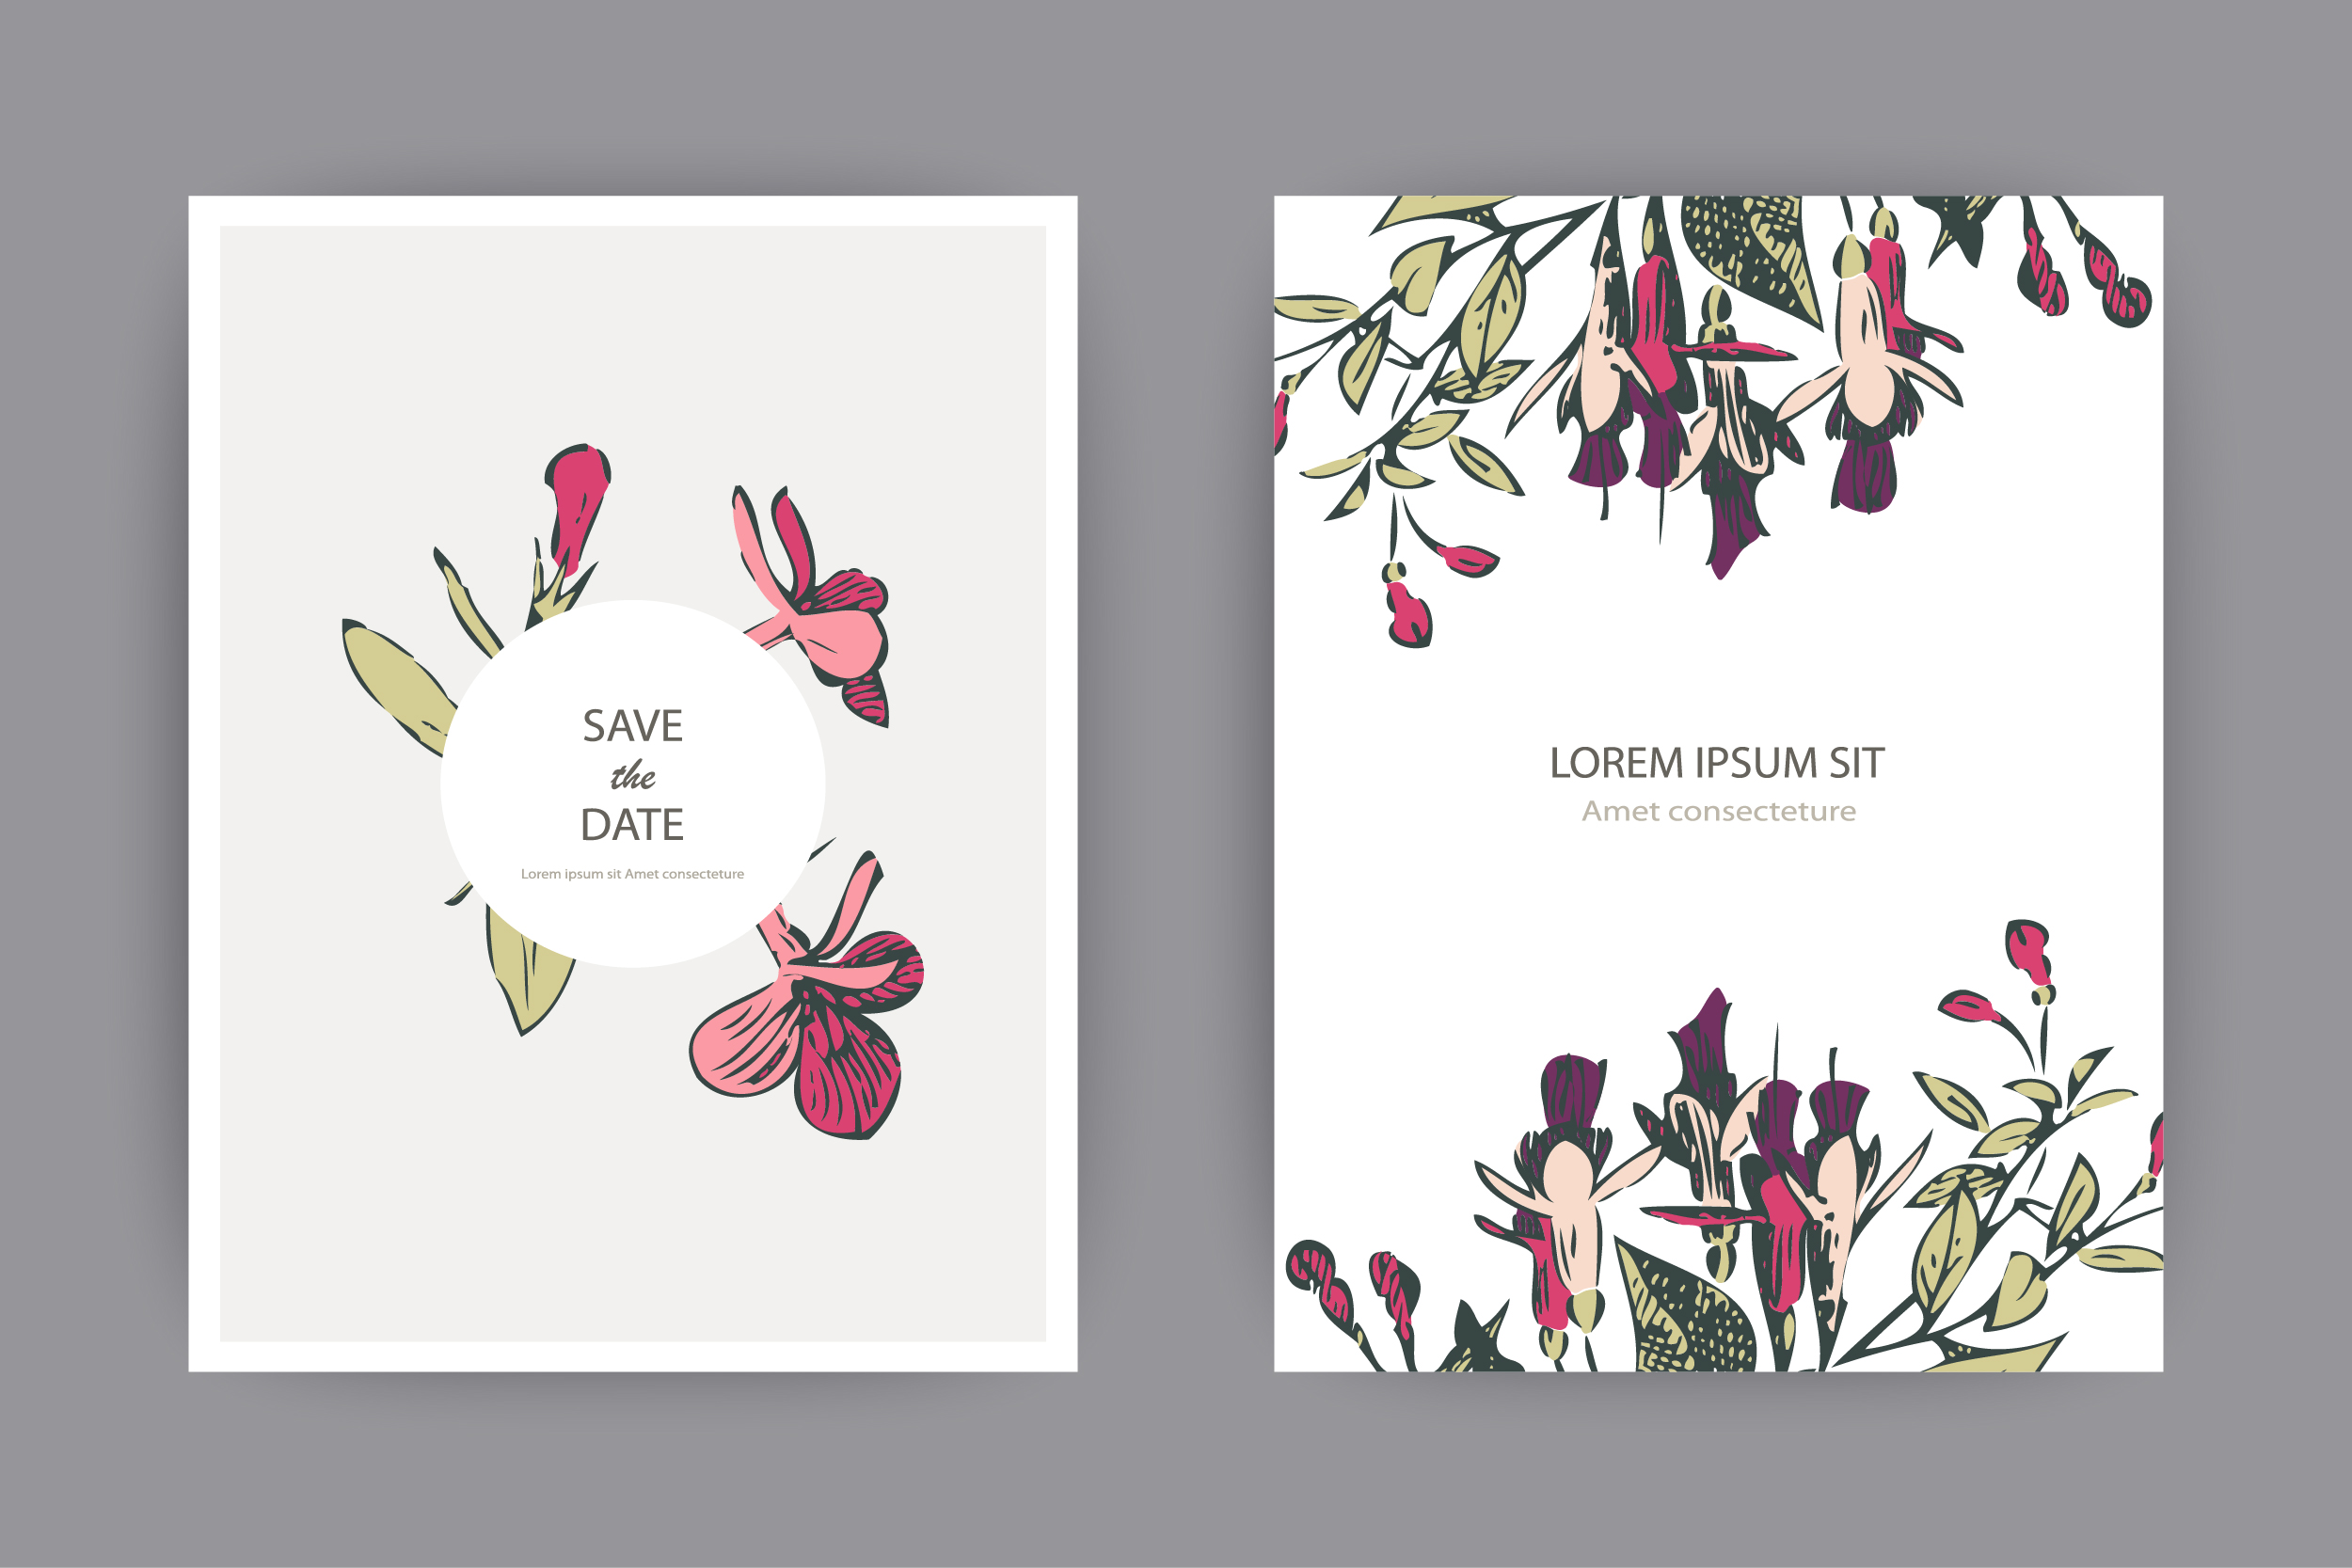 Fuchsia flowers templates for card, invitation, wedding example image 2